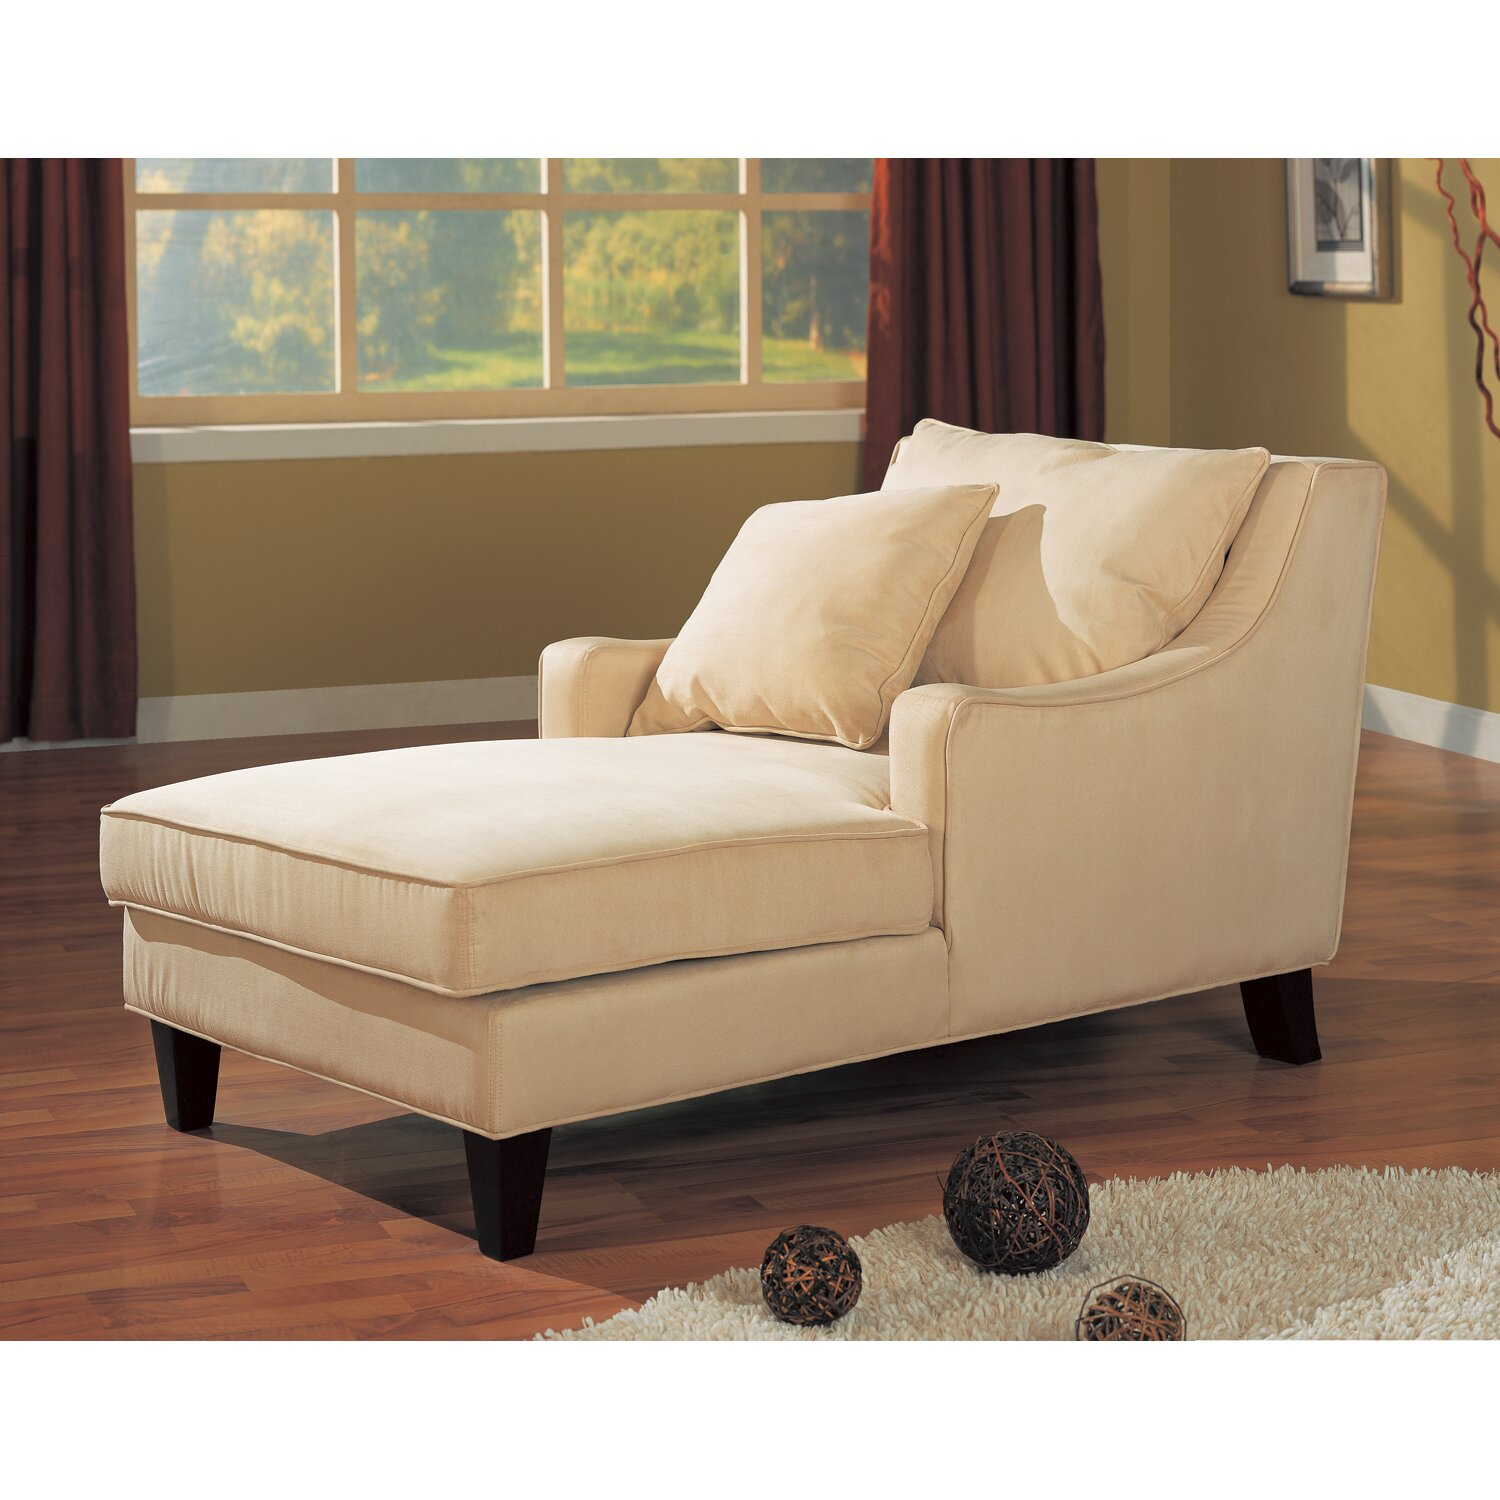 Wildon home sandy chaise reviews for Chaise lounge chair living room